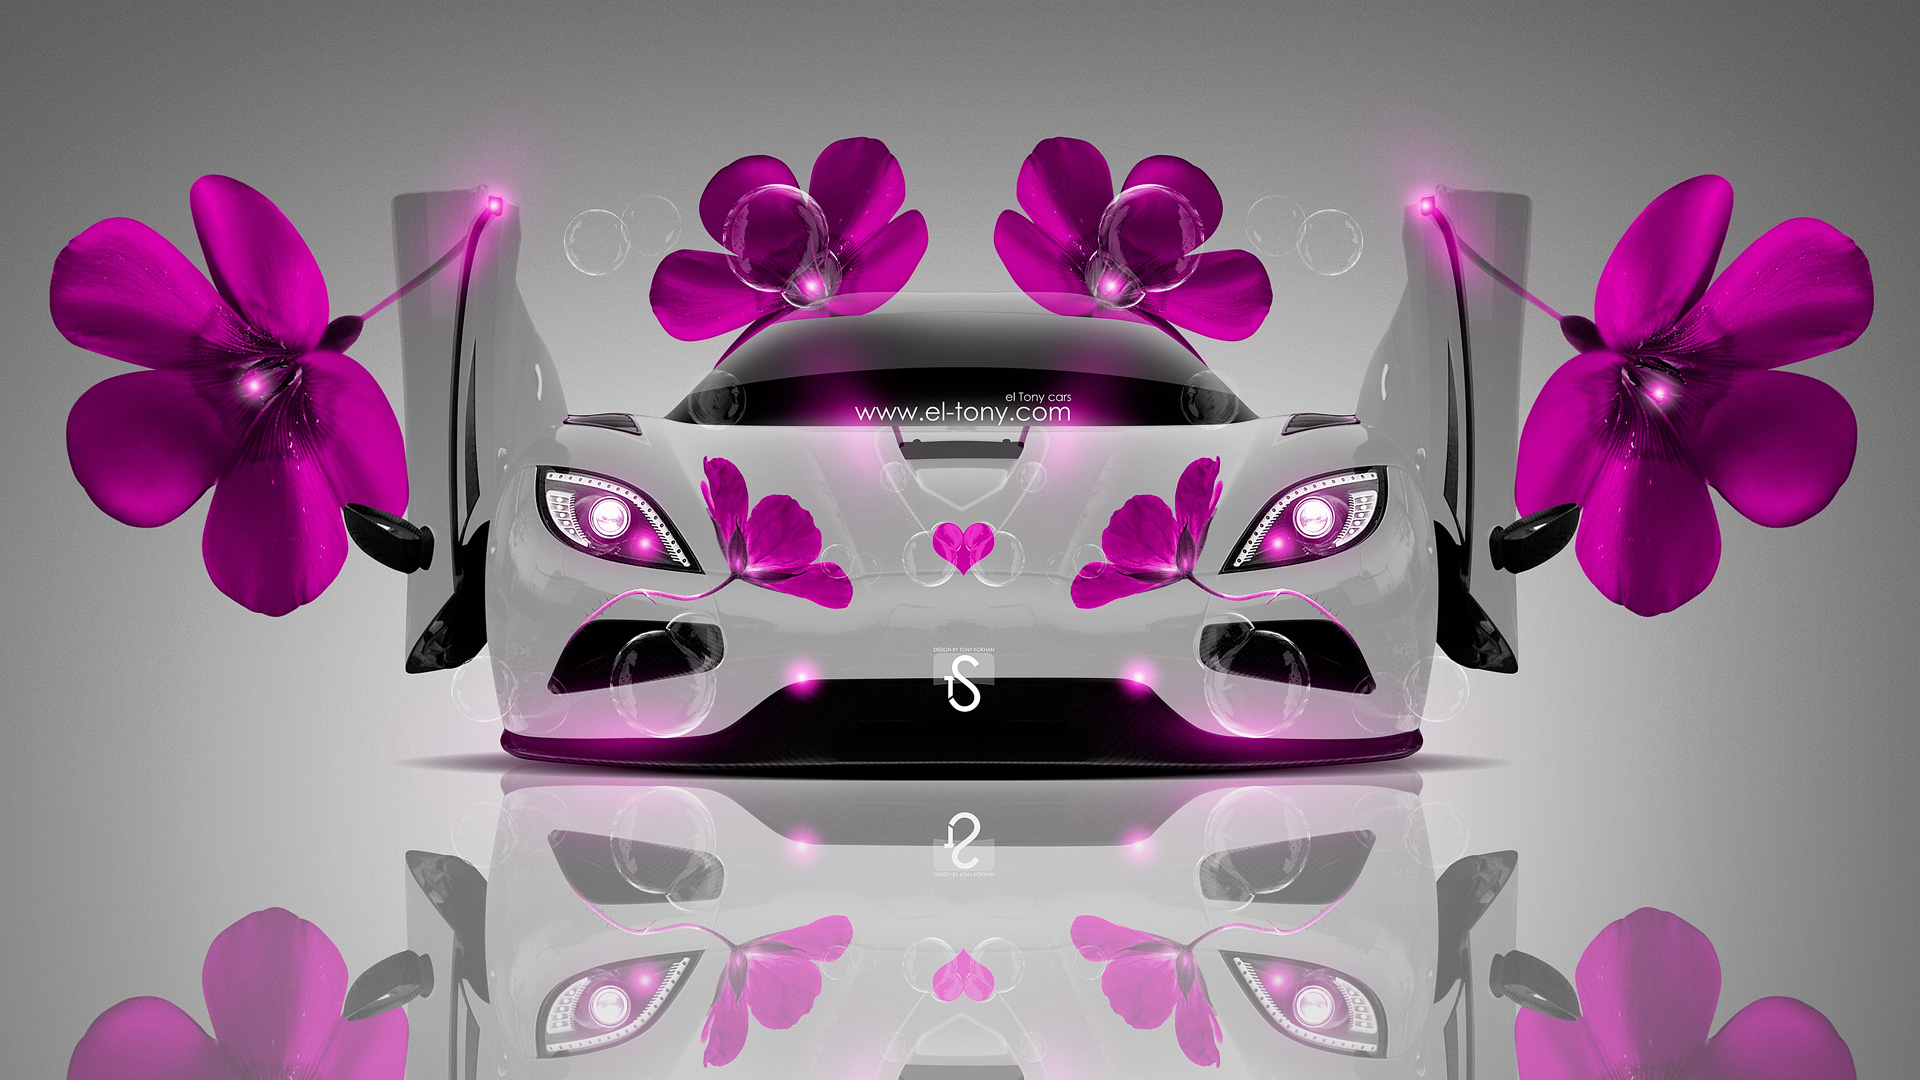 Exceptional Koenigsegg Agera Fantasy Pink Flowers Car 2014 Design